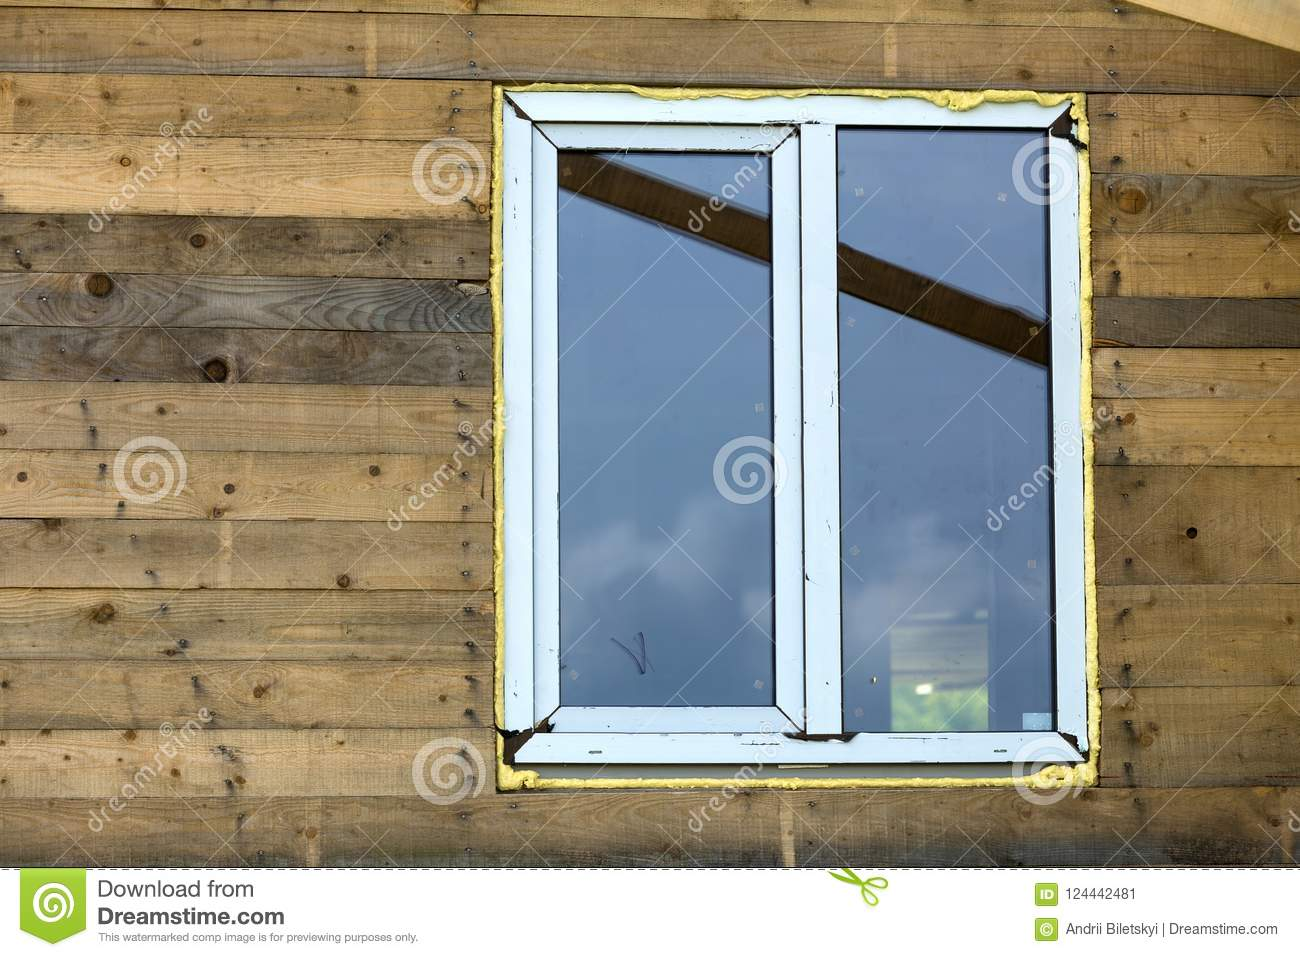 Installing plastic windows in a wooden house do it yourself 86